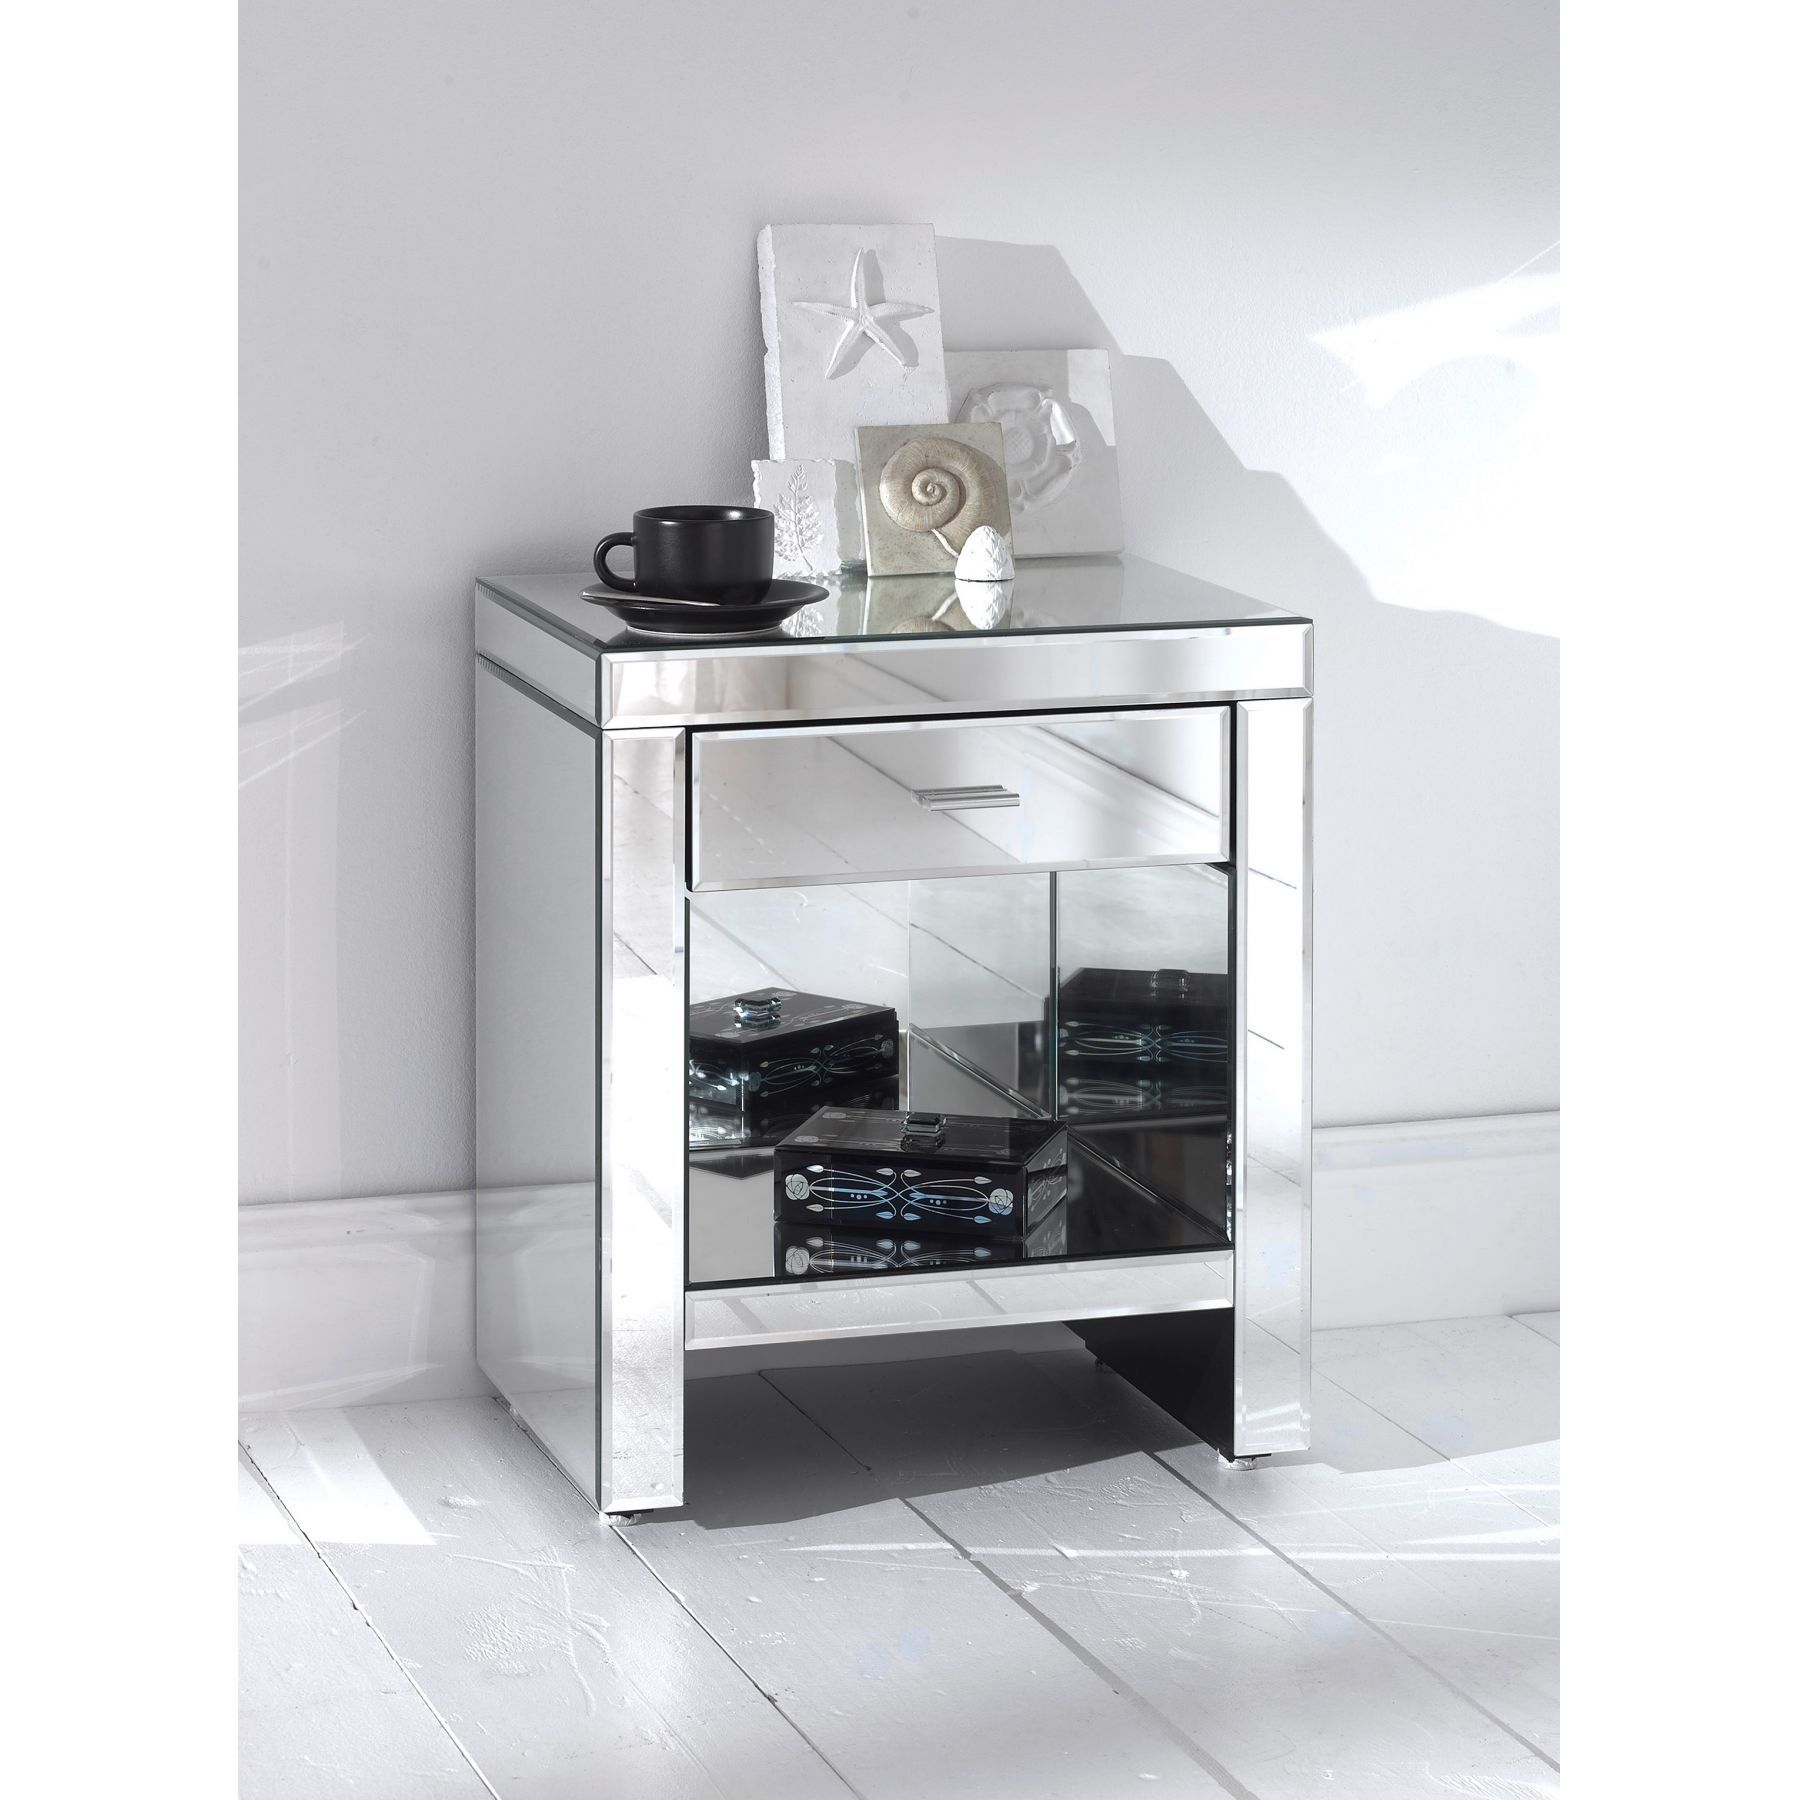 Romano Mirrored Bedside U0026 Shelf From Big Collection Of Bedside Tables From  United Kingdom. Also Deals In Manufacturer Of Romano Mirrored Bedside U0026  Shelf